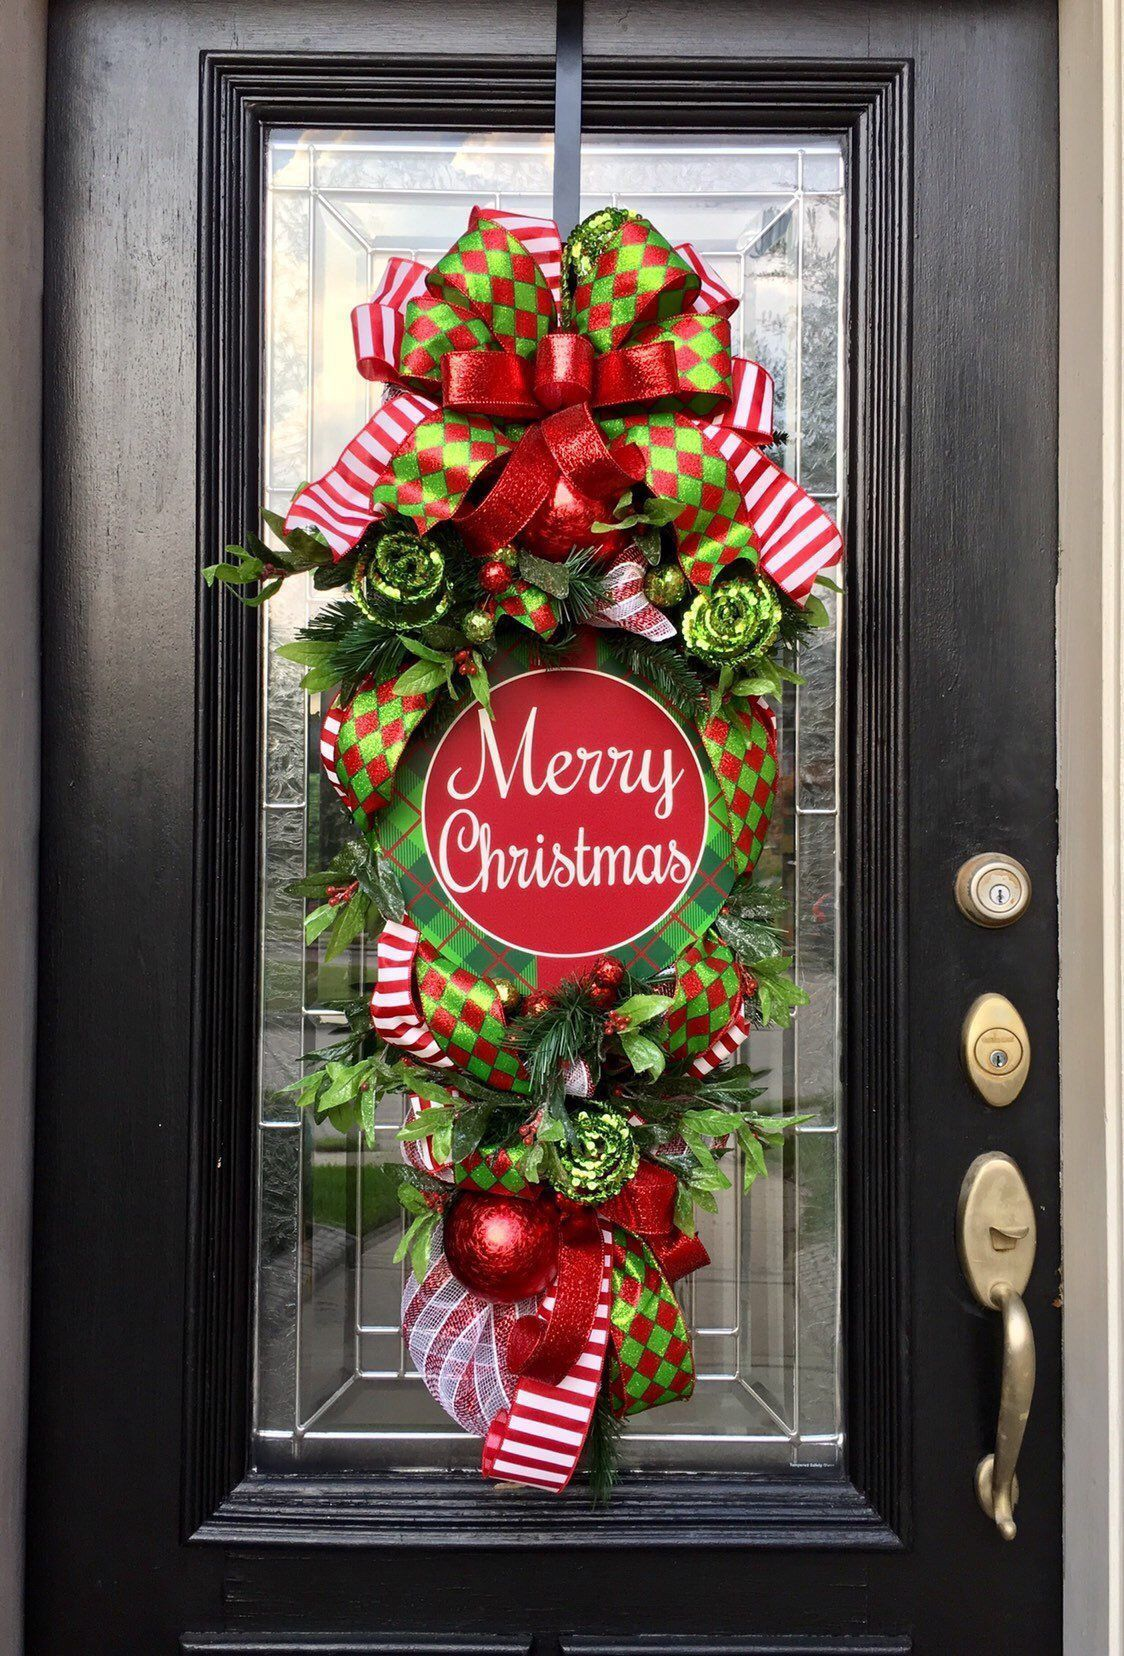 Excited to share the latest addition to my #etsy shop: Christmas Swag, Christmas Wreath, Holiday Door Decor, Double Door Wreaths, Red and Green Wreath, Christmas Garland, Swag for front door #doubledoorwreaths Excited to share the latest addition to my #etsy shop: Christmas Swag, Christmas Wreath, Holiday Door Decor, Double Door Wreaths, Red and Green Wreath, Christmas Garland, Swag for front door #doubledoorwreaths Excited to share the latest addition to my #etsy shop: Christmas Swag, Christmas #doubledoorwreaths